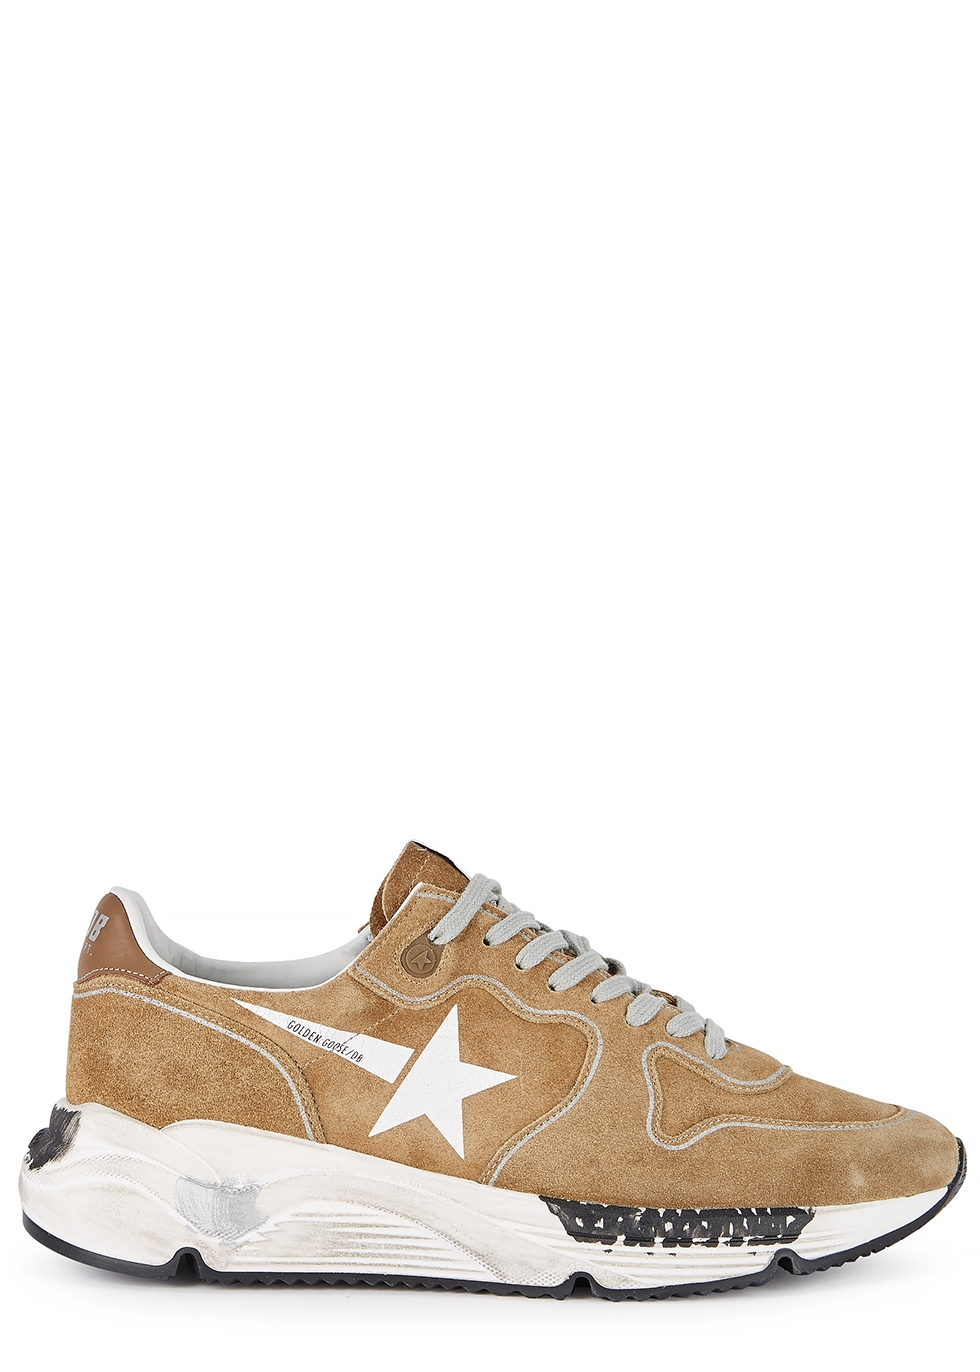 Men's Designer Trainers, Sneakers & Sports Shoes Harvey